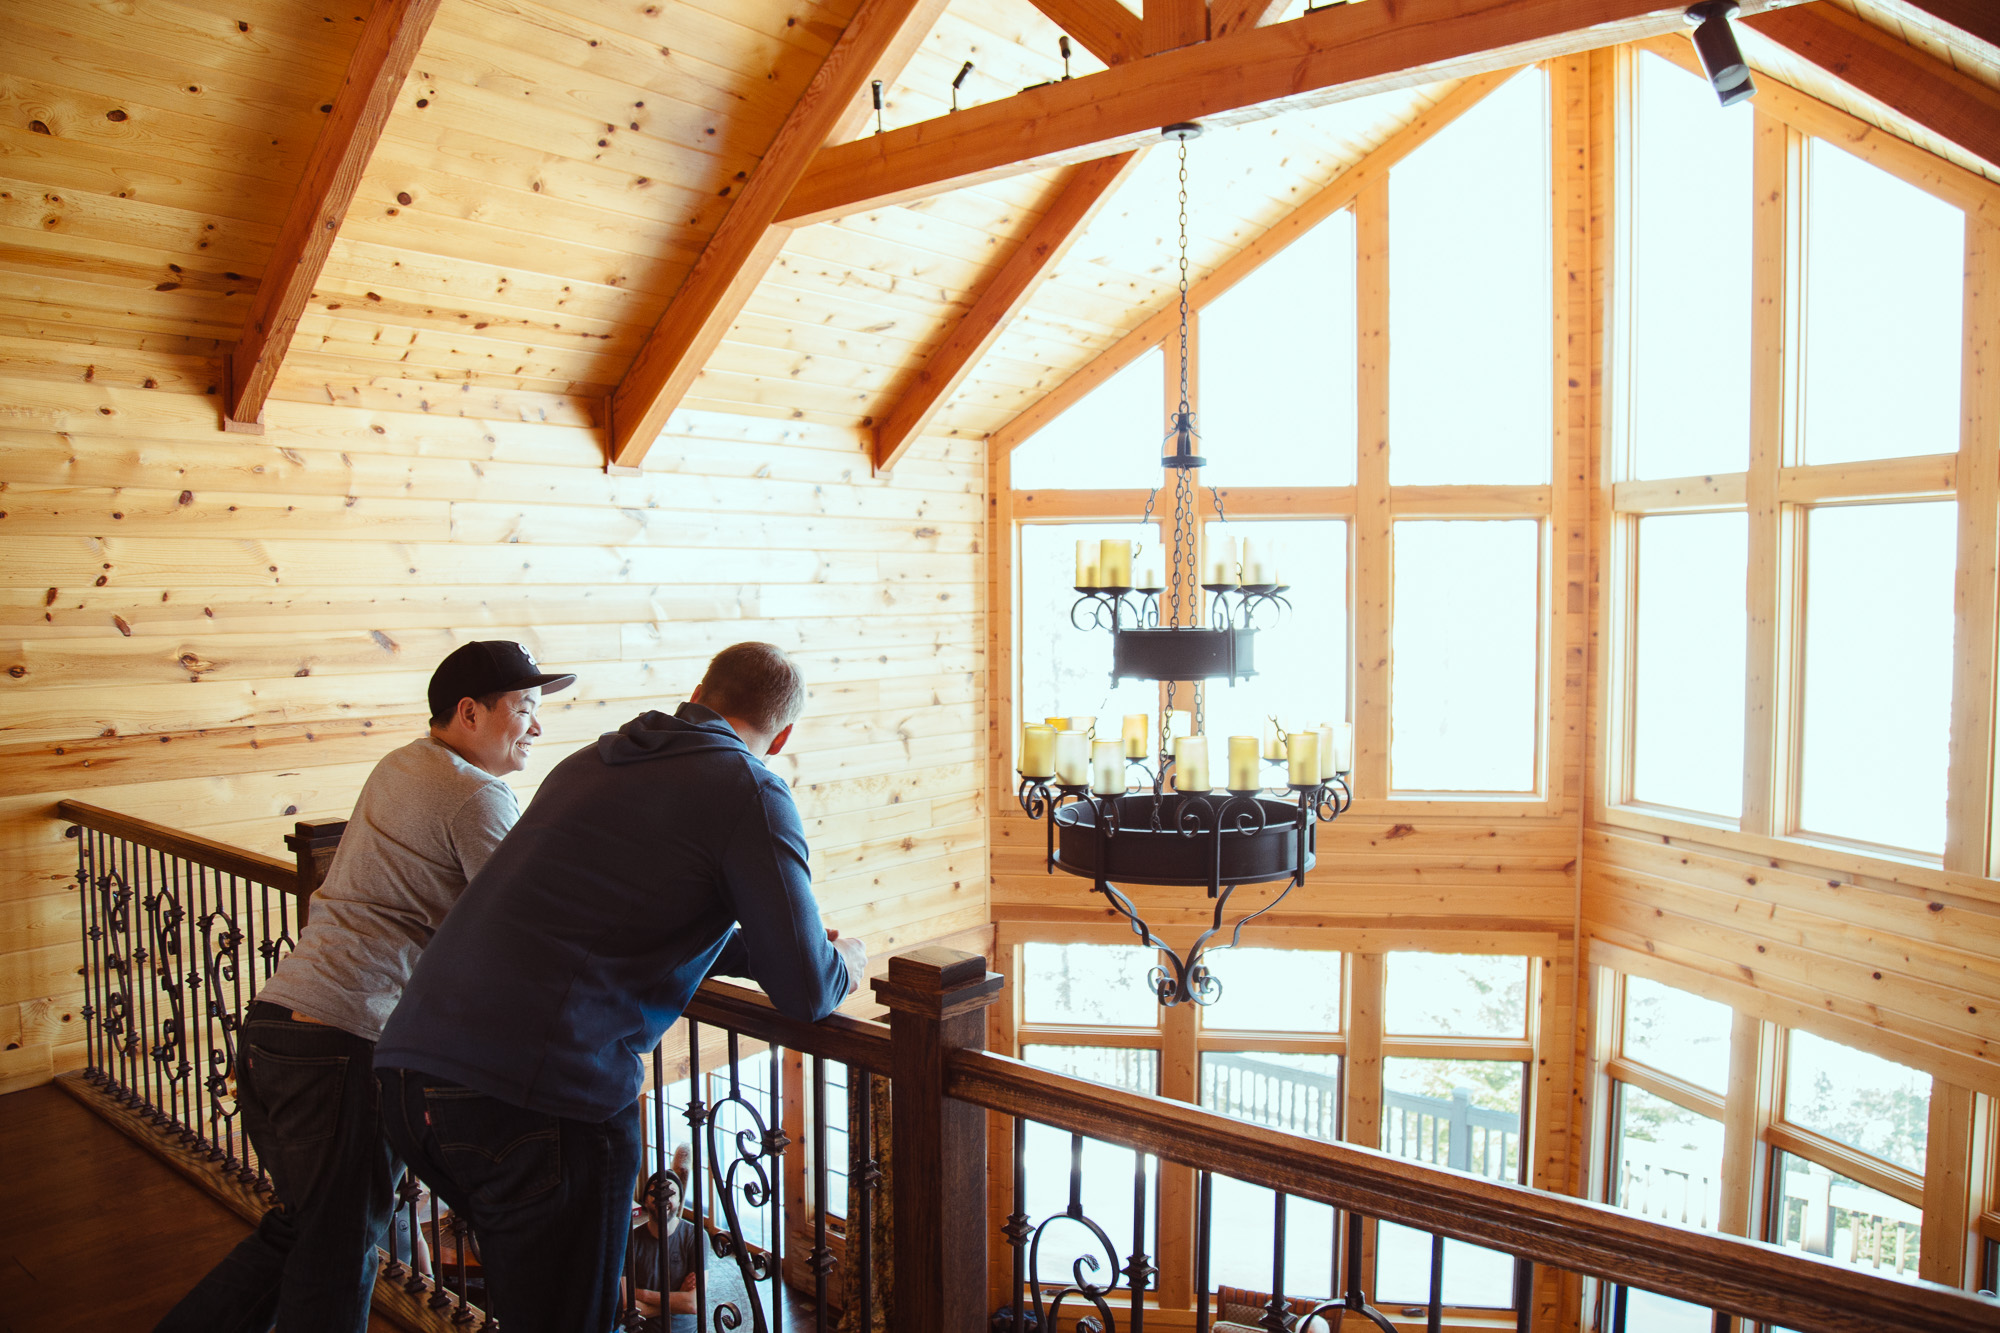 People chatting inside log cabin